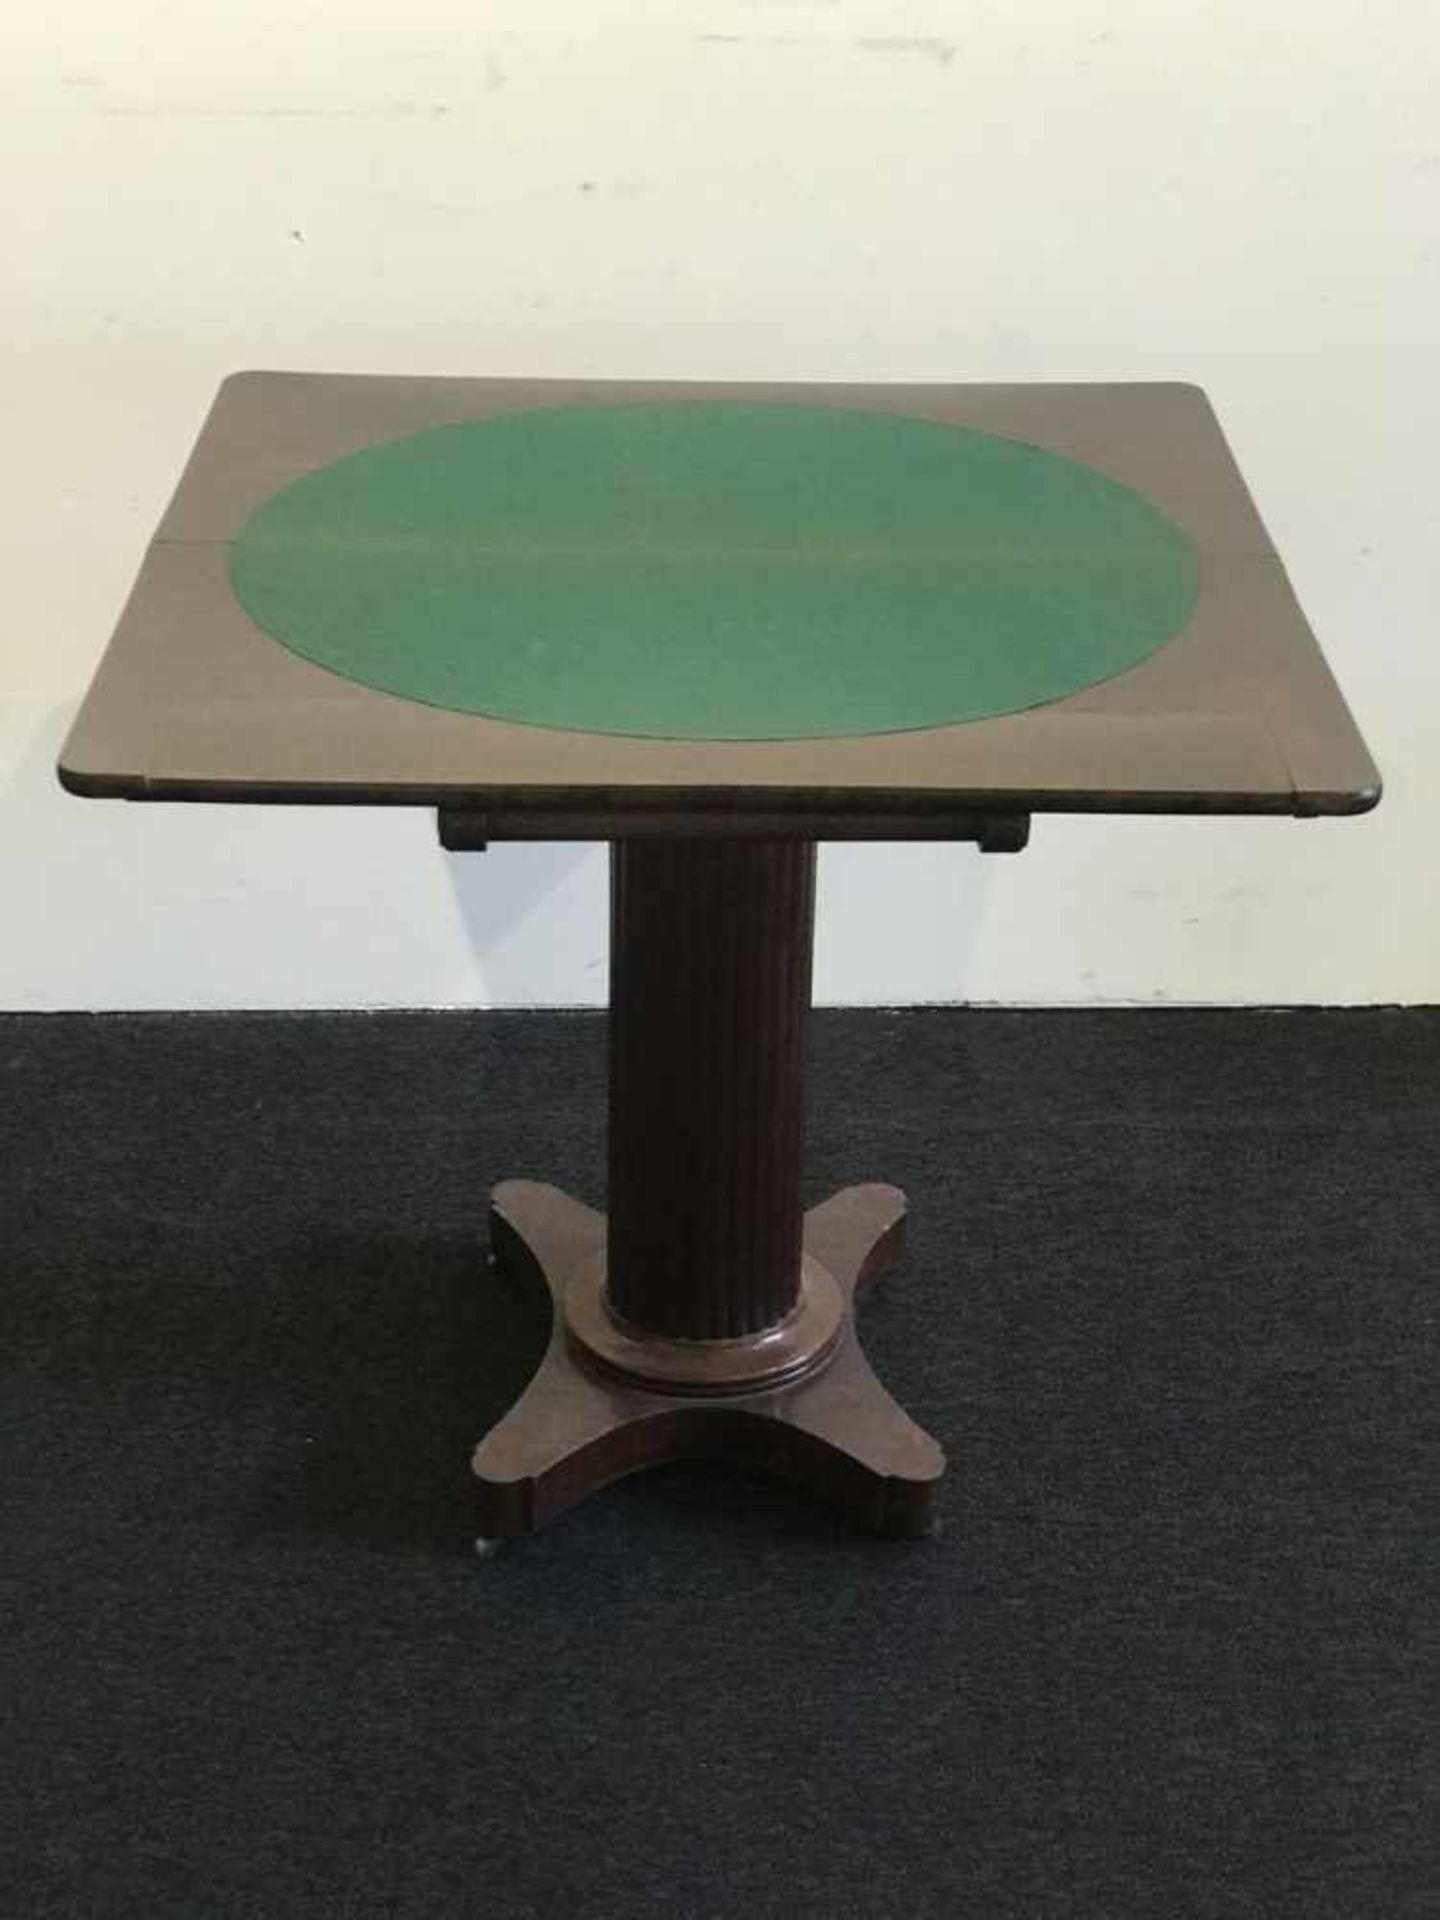 Los 103 - Card table on a central leg H 73 L 80 x 80 cm (open)